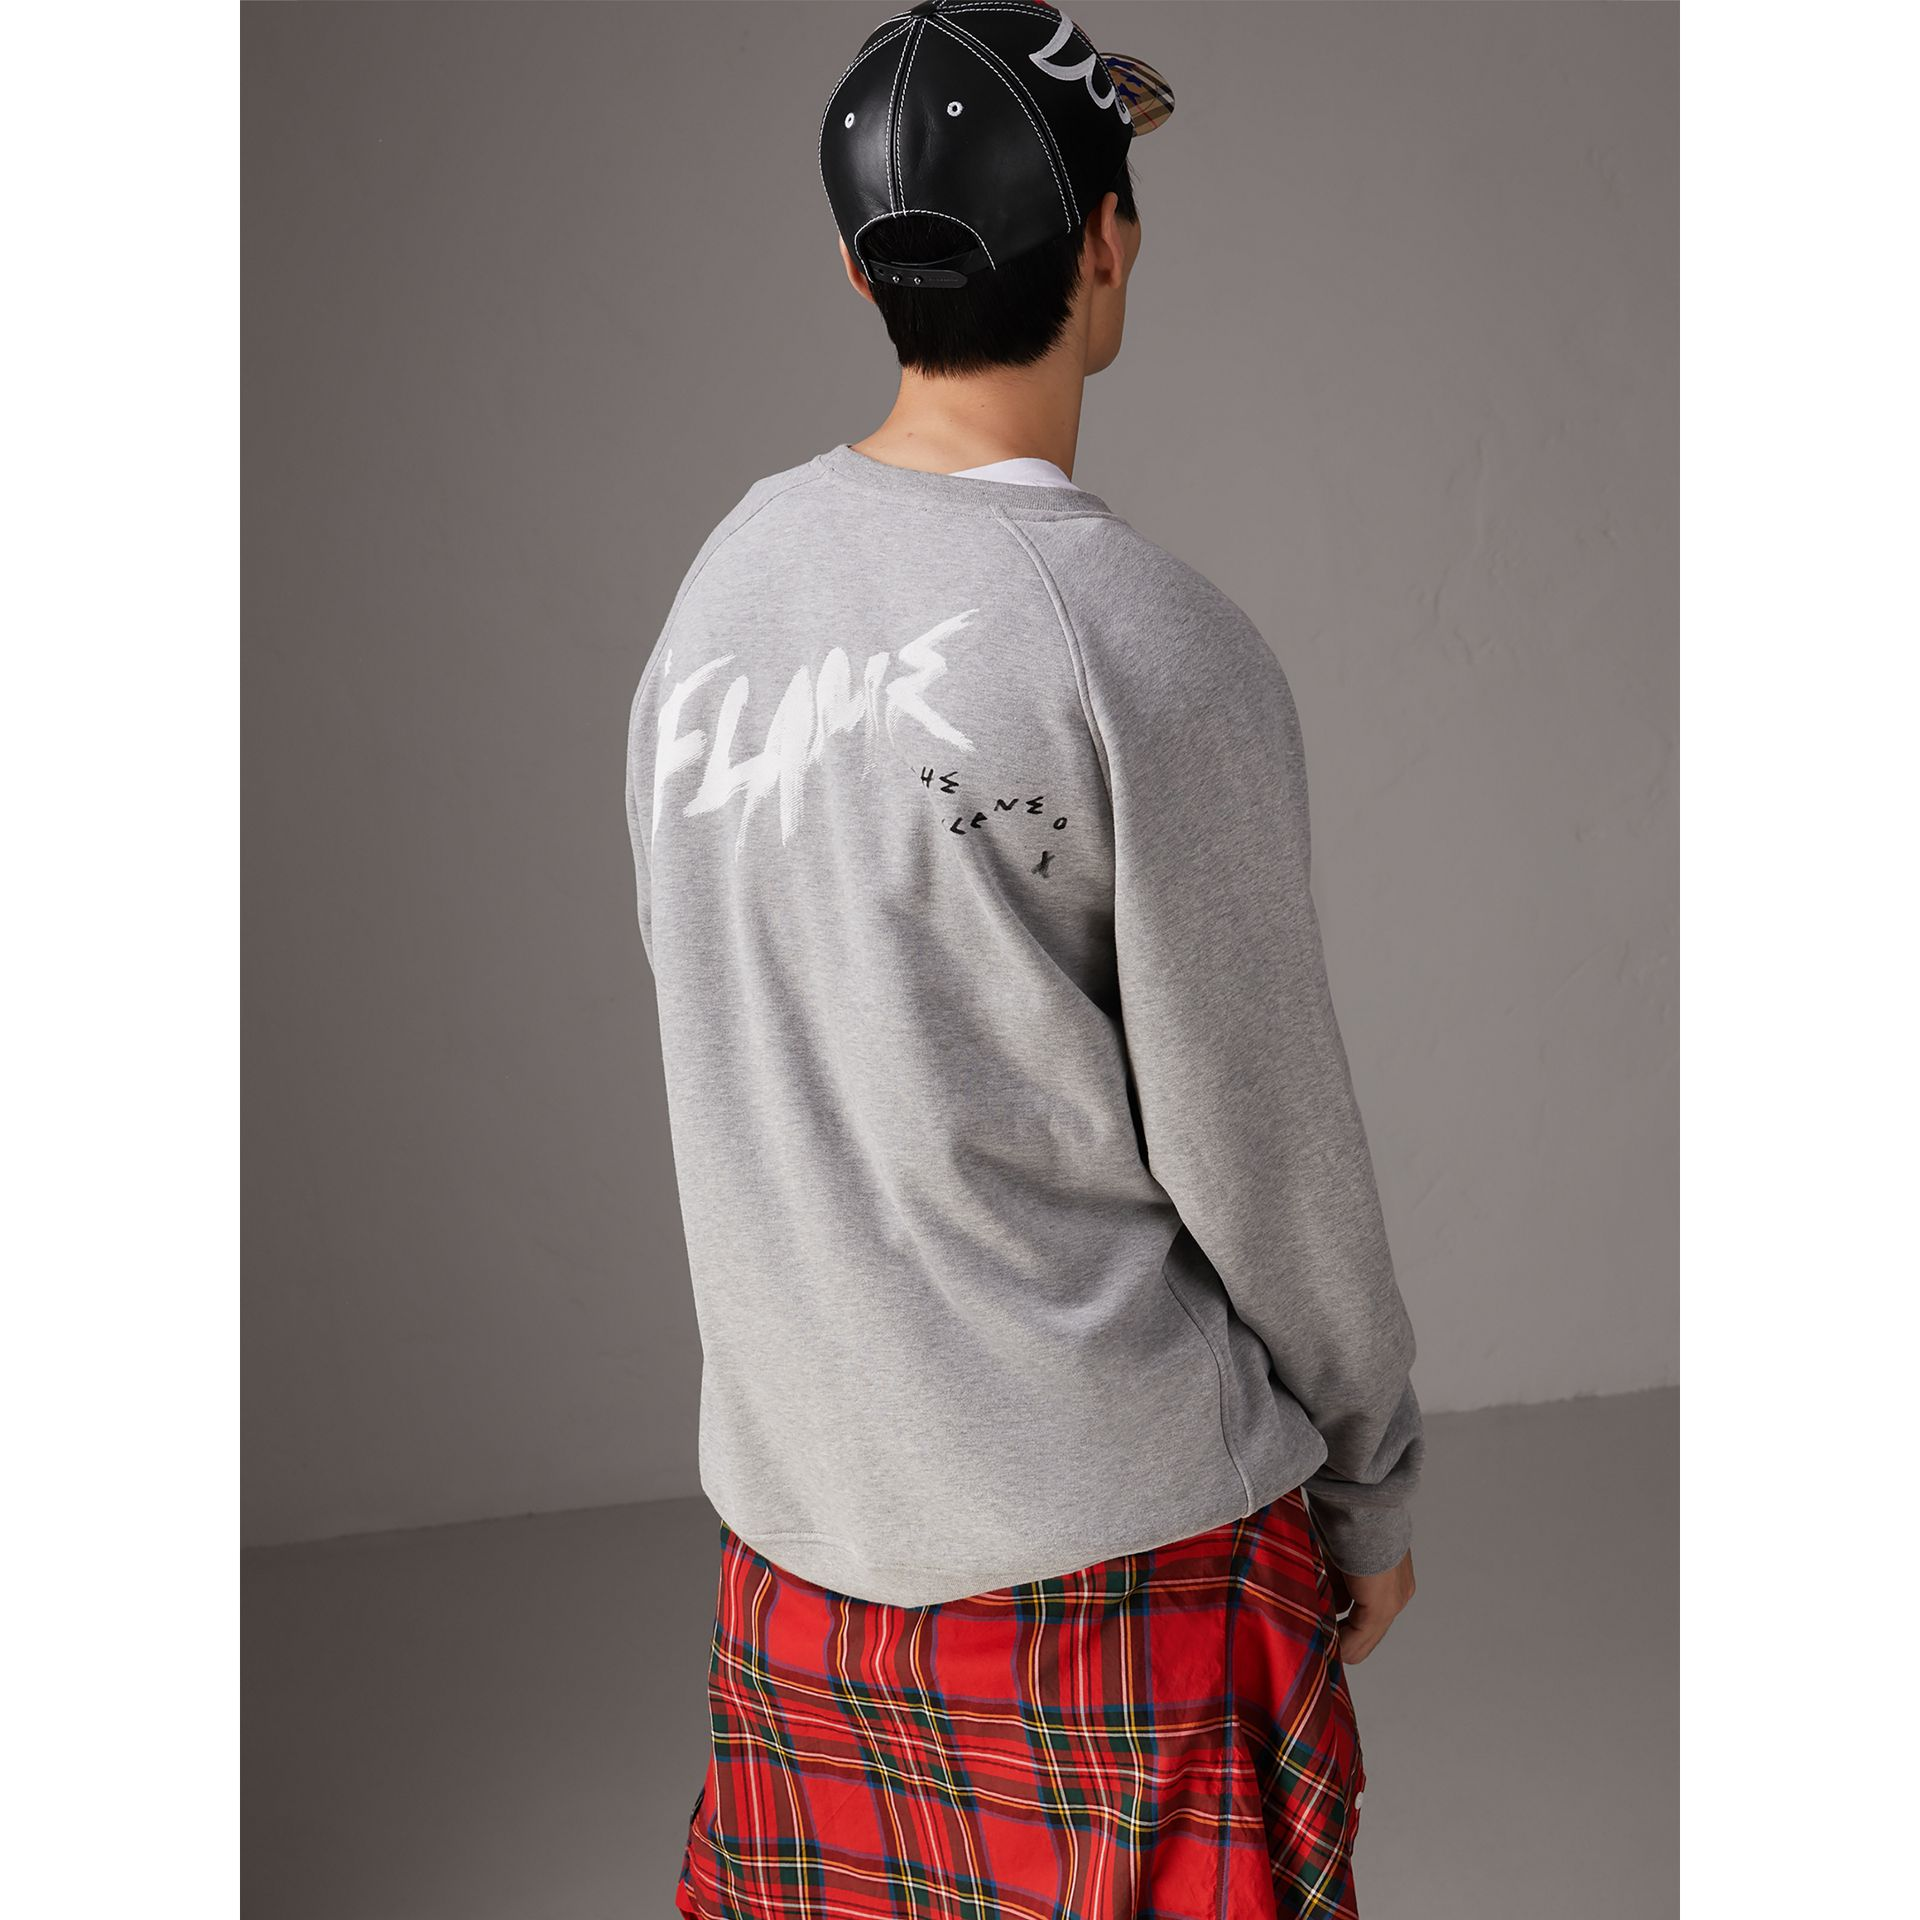 Burberry x Kris Wu Graphic Motif Sweatshirt in Pale Grey Melange - Men | Burberry United States - gallery image 2